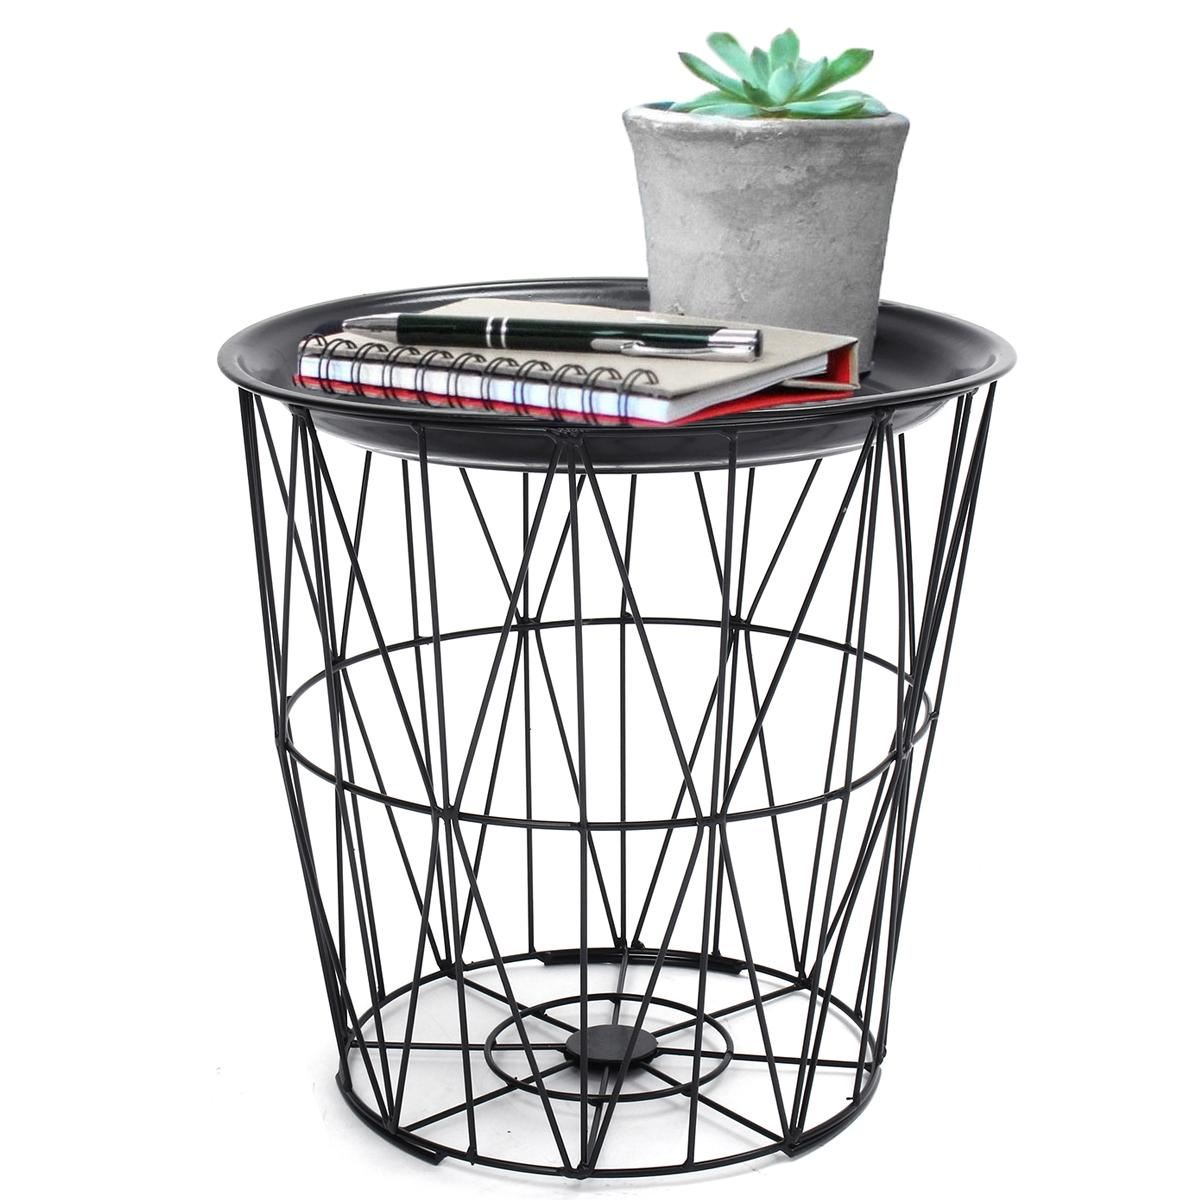 cork coffee table probably outrageous free black side with geometric iron metal wire round tray top storage basket etched glass panels diy butcher block mini nightstand leather